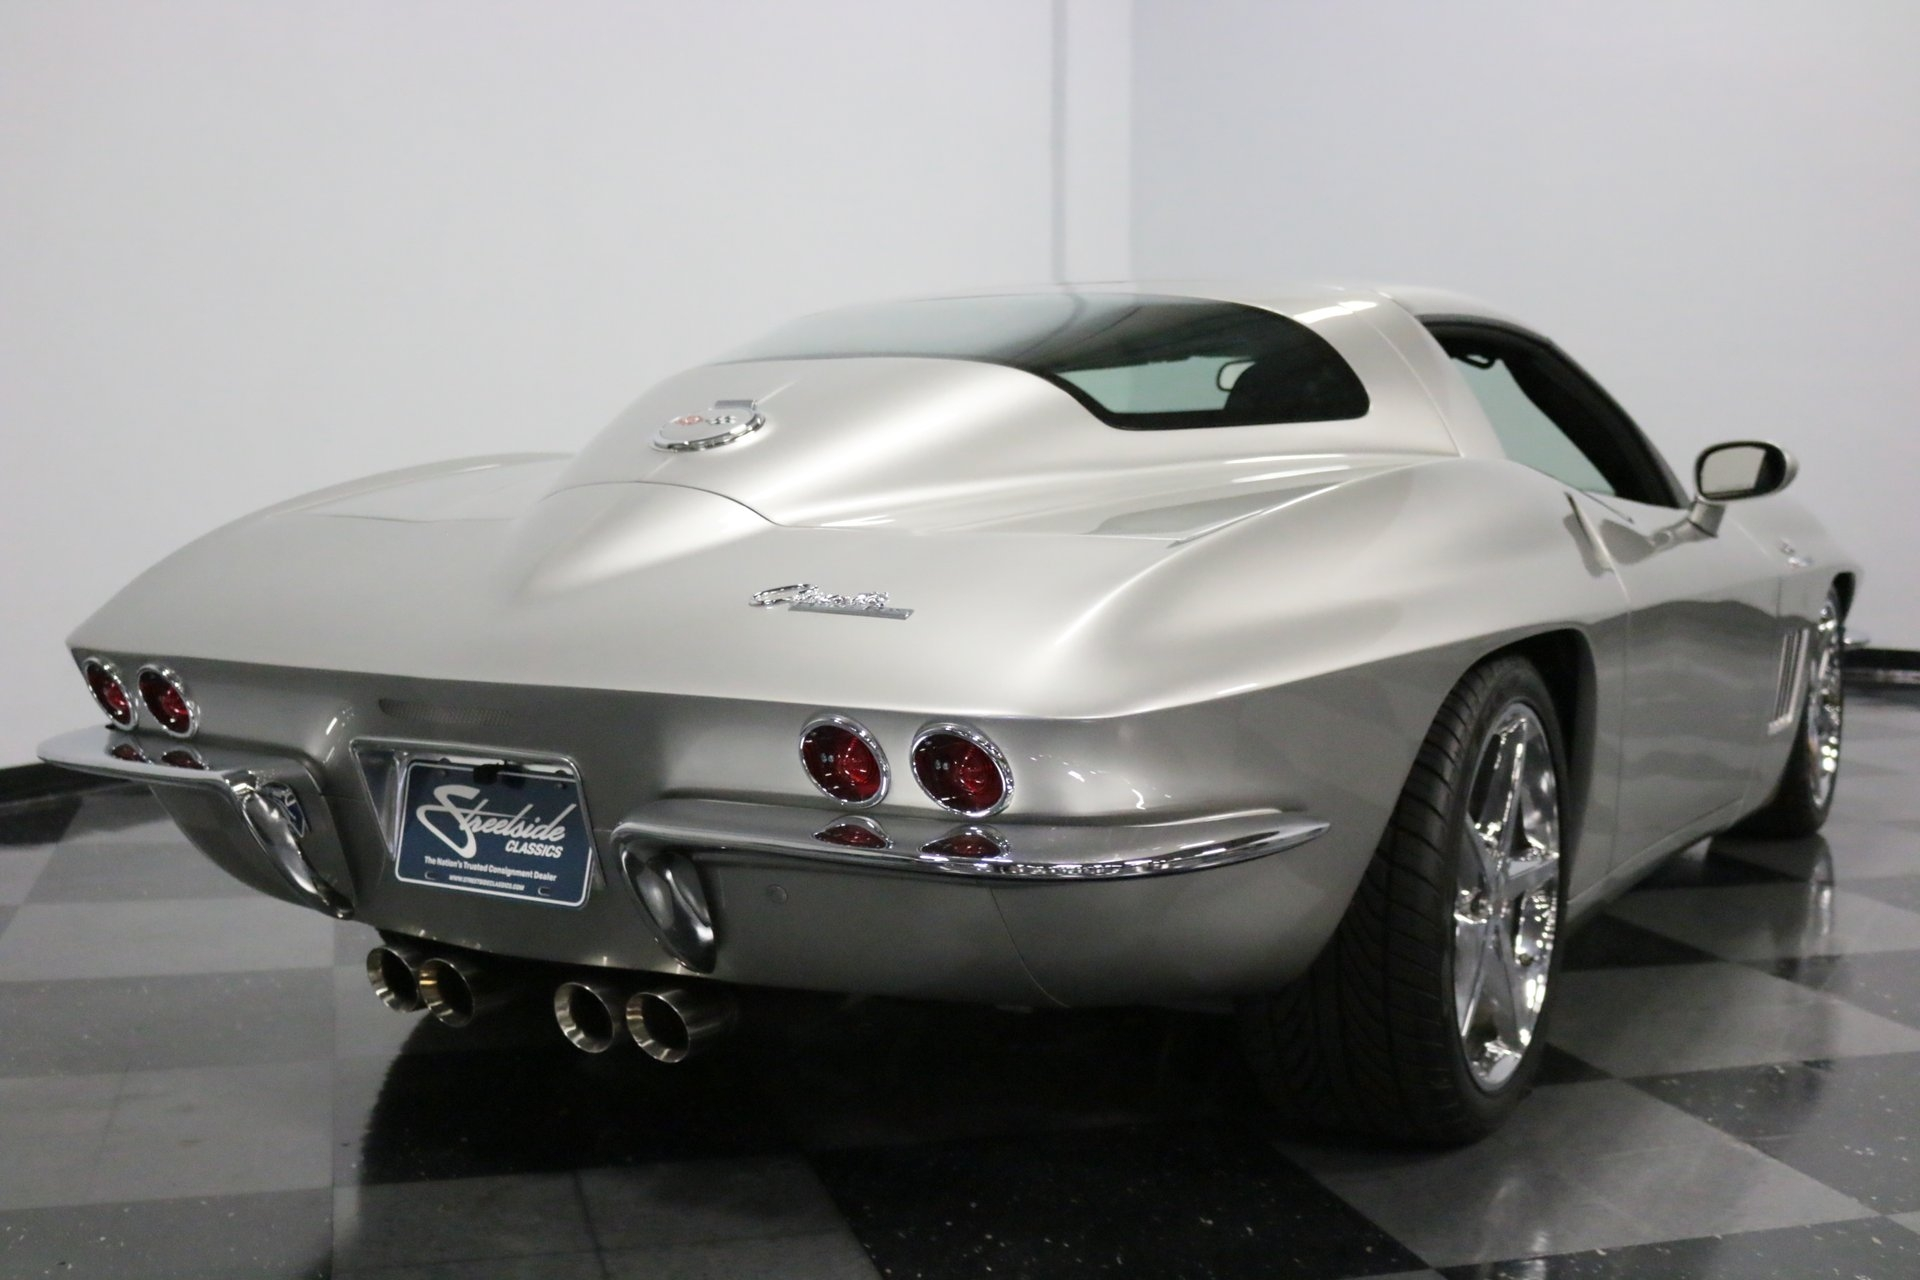 This C2-Styled 2013 Chevrolet Corvette 'Stingray' Is a